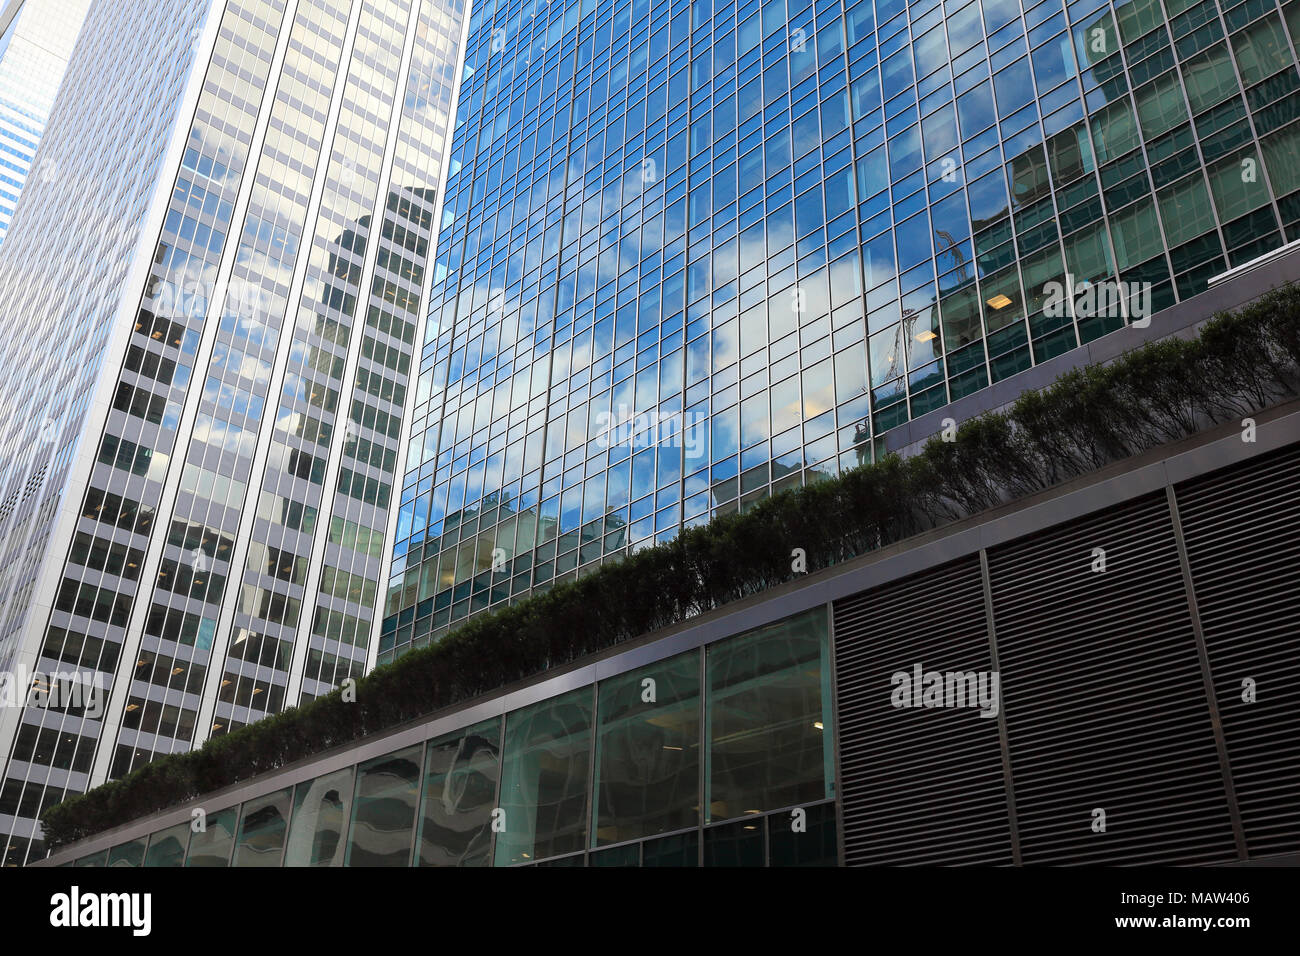 Facade of the Lever House building in Midtown Manhattan, New York City - Stock Image